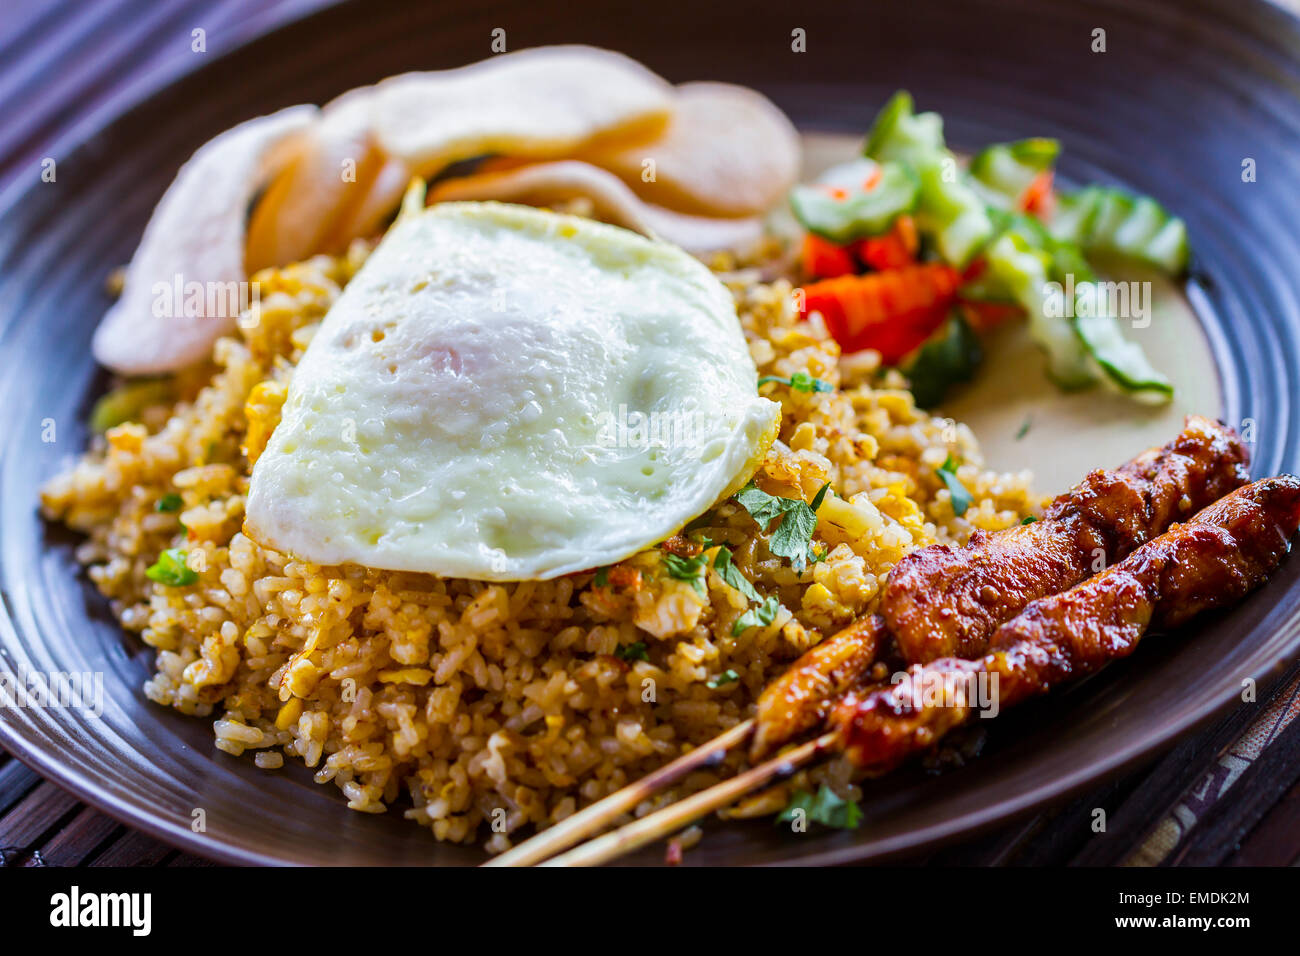 nasi goreng indonesian traditional recipe with fried rice fried